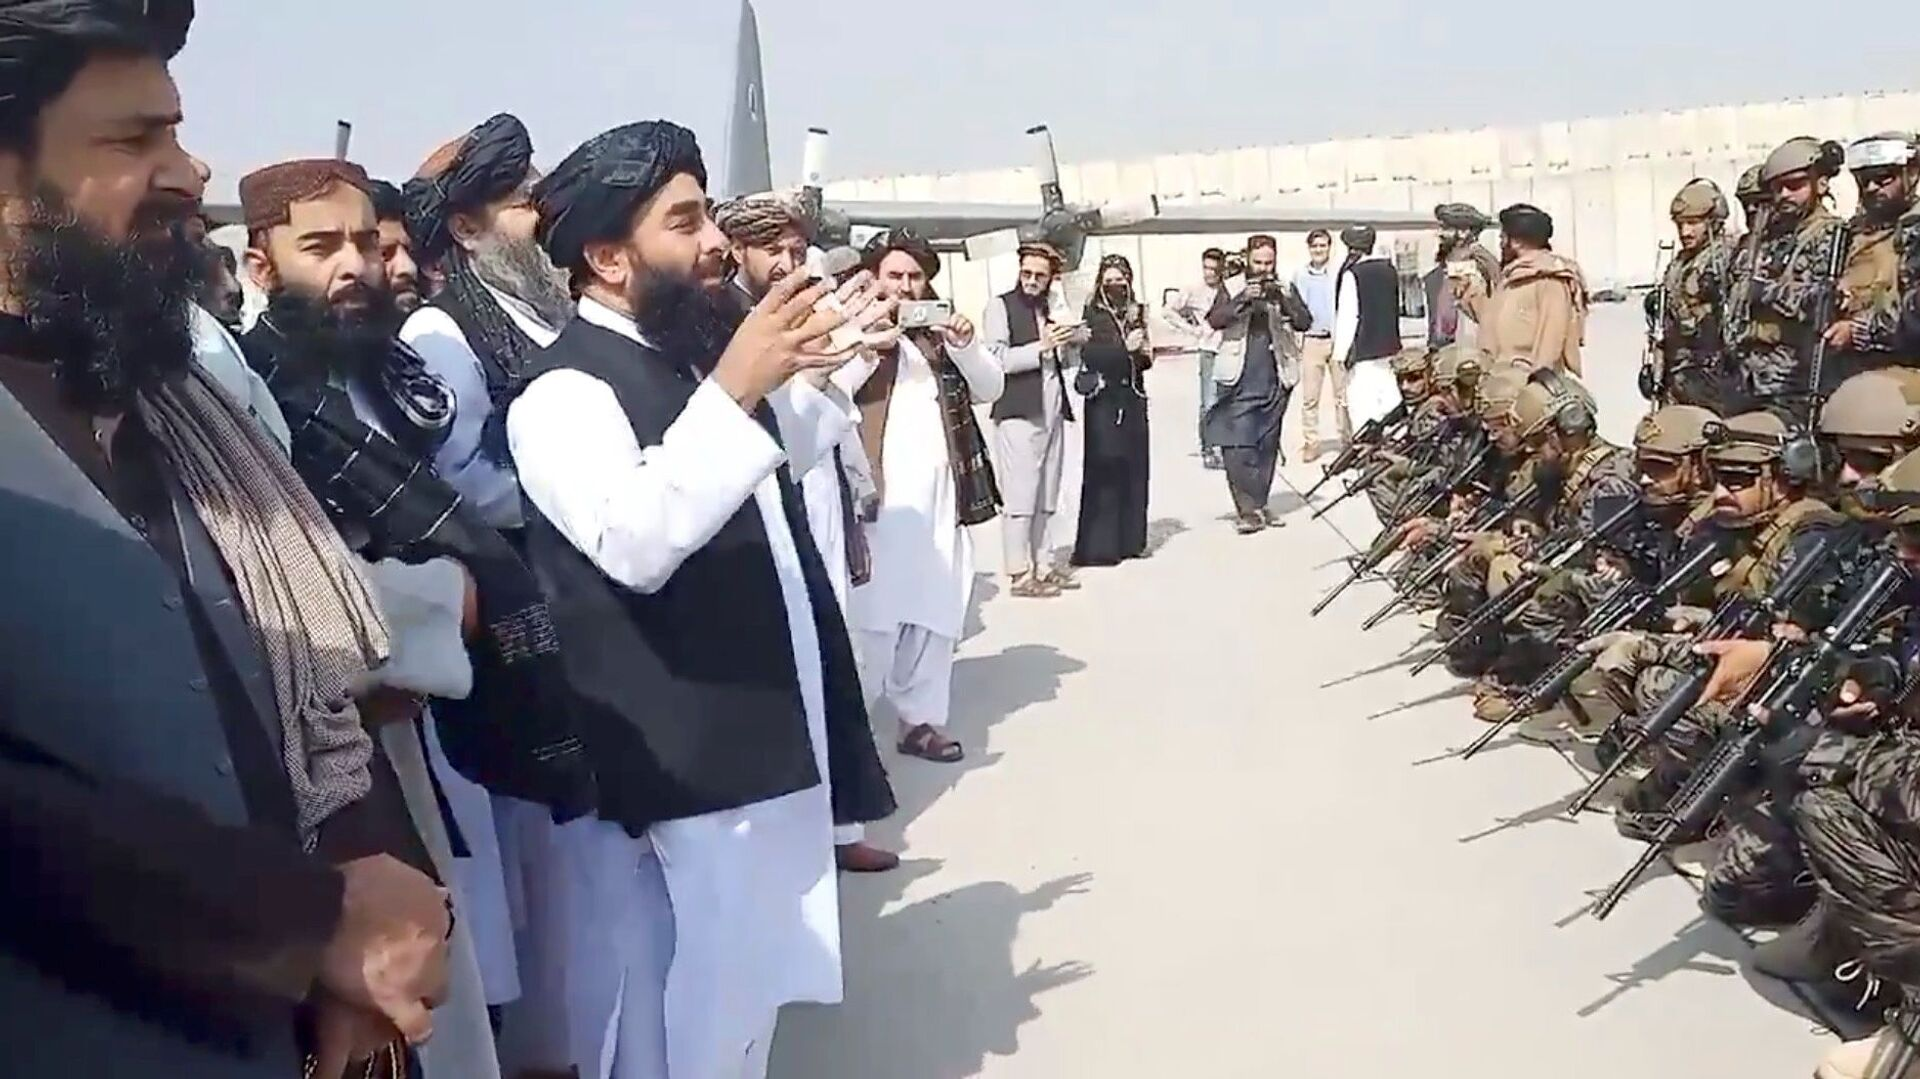 Taliban spokesman Zabihullah Mujahid speaks to Badri 313 military unit at Kabul's airport, Afghanistan August 31, 2021 in this still image obtained from a handout video.  Taliban/Handout via REUTERS   ATTENTION EDITORS - THIS IMAGE HAS BEEN SUPPLIED BY A THIRD PARTY. NO RESALES. NO ARCHIVES.  - Sputnik International, 1920, 23.09.2021